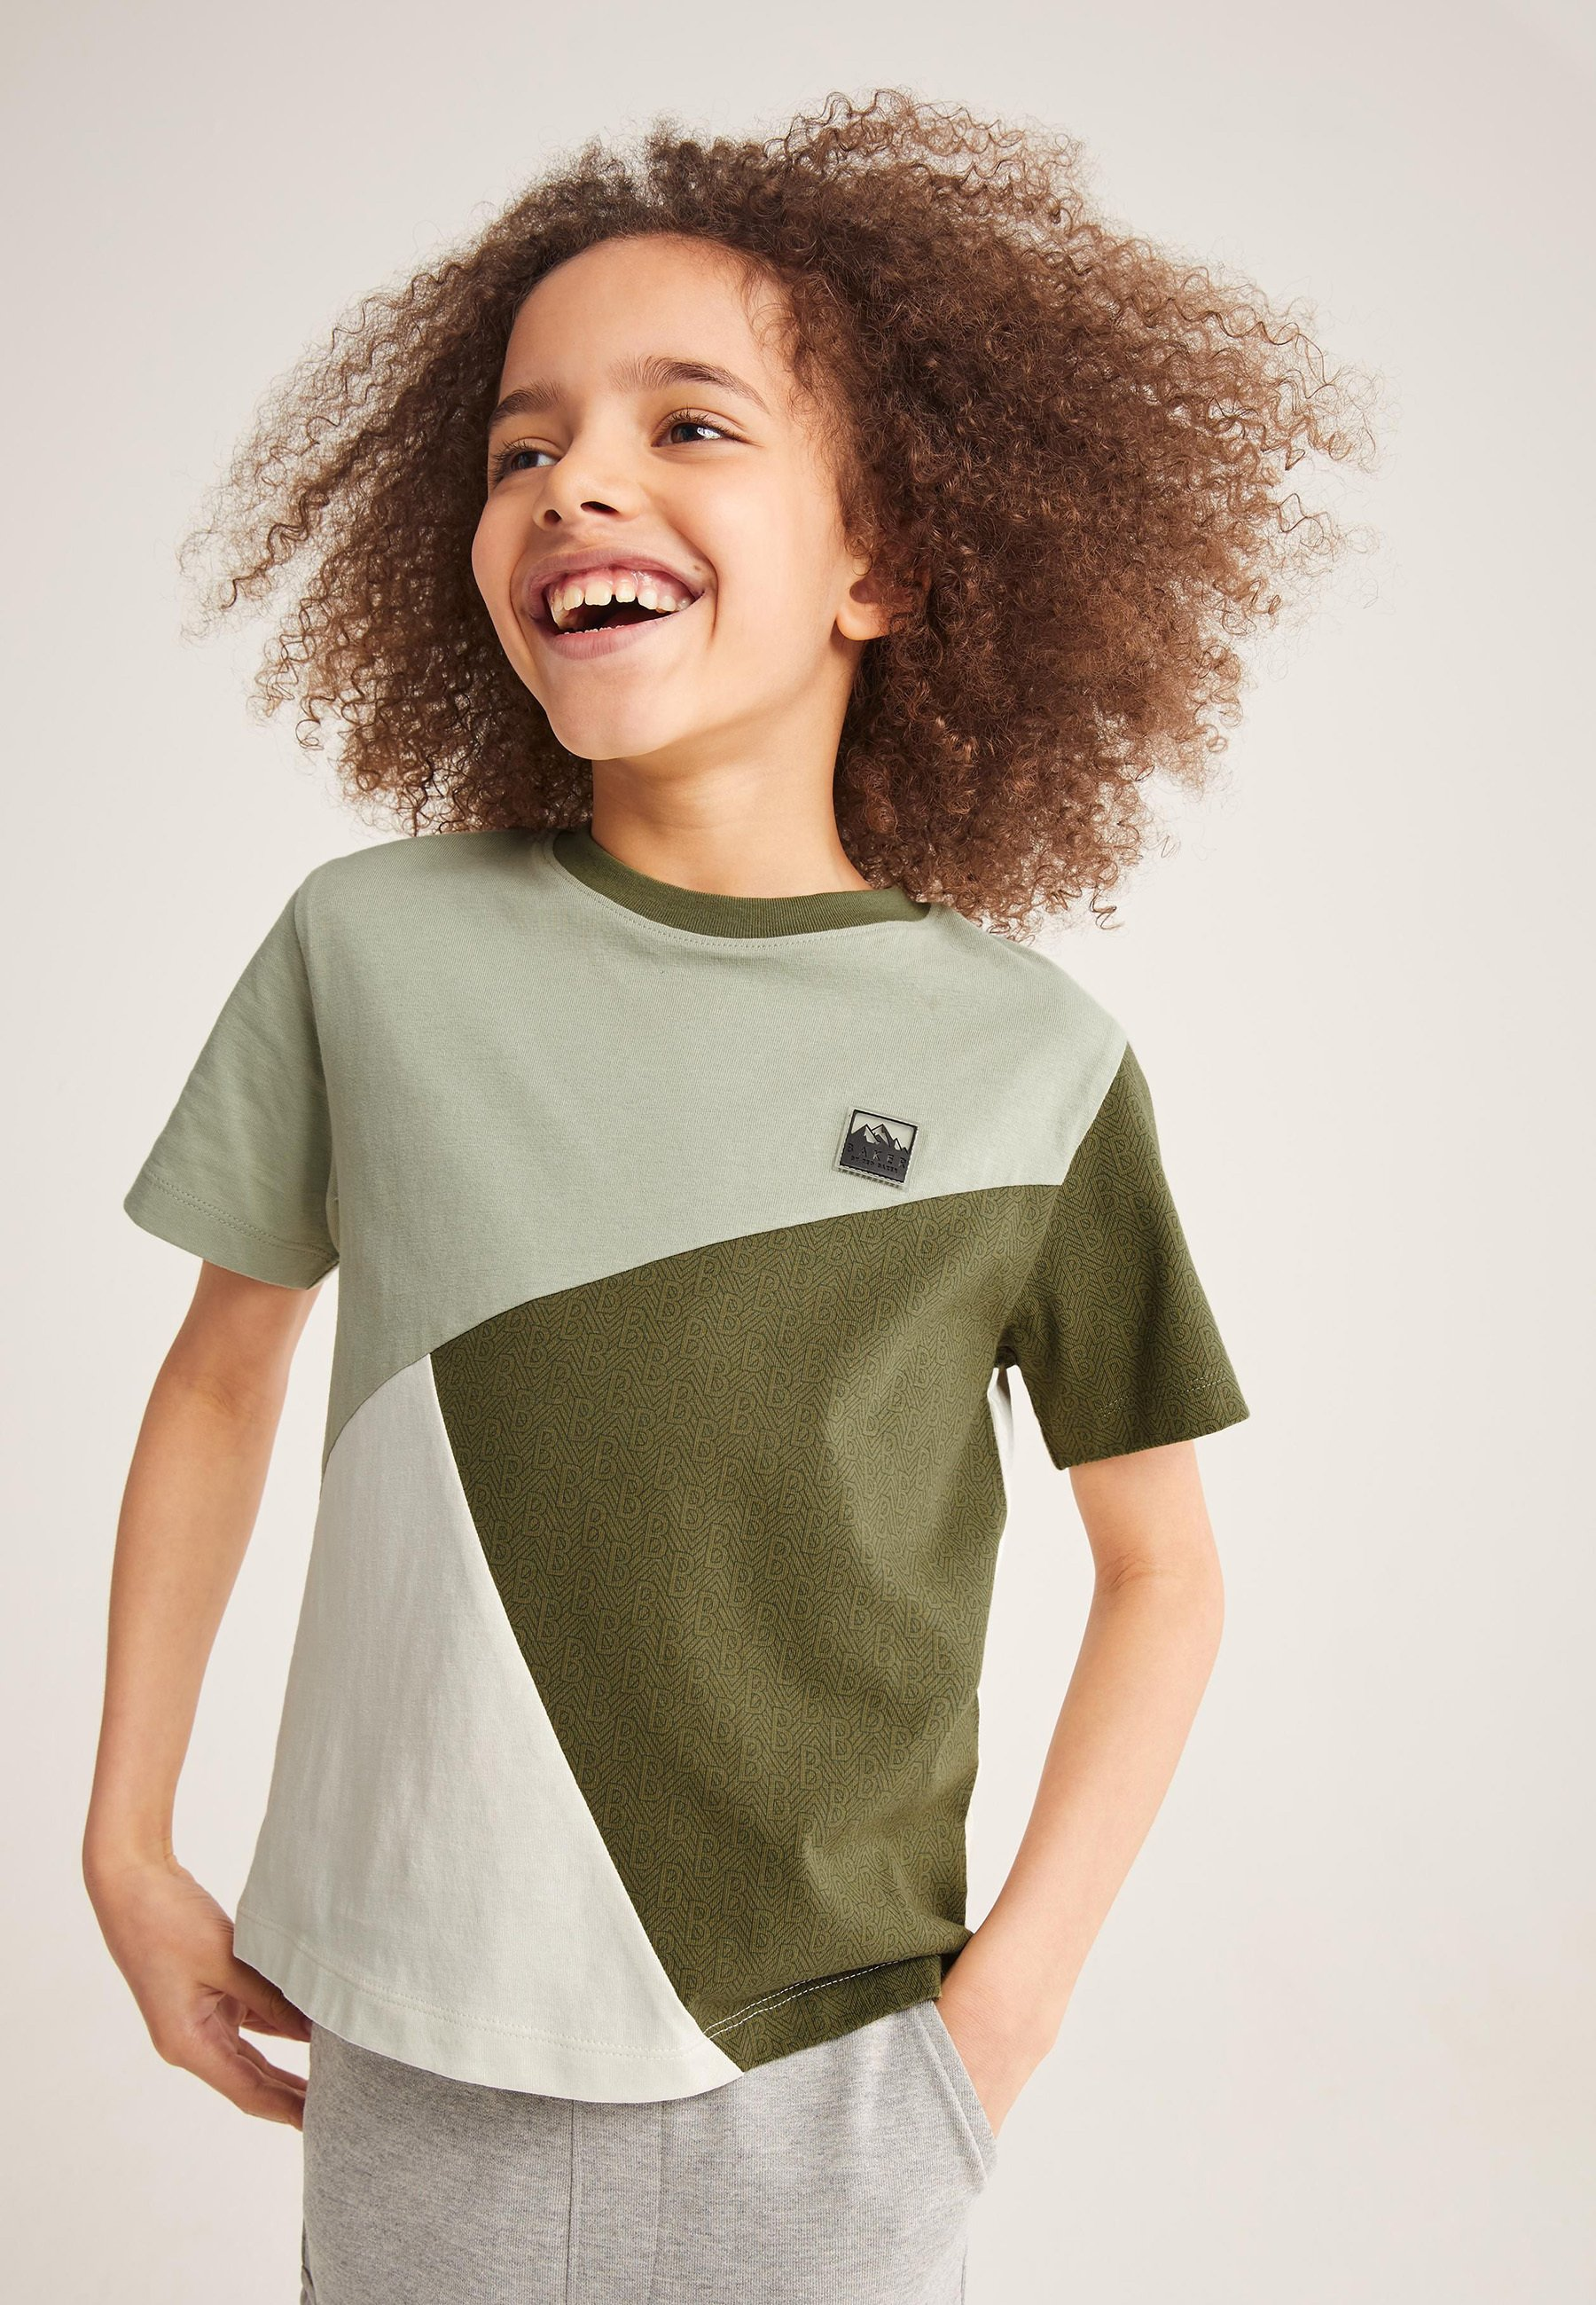 Bambini BAKER BY TED BAKER - T-shirt con stampa